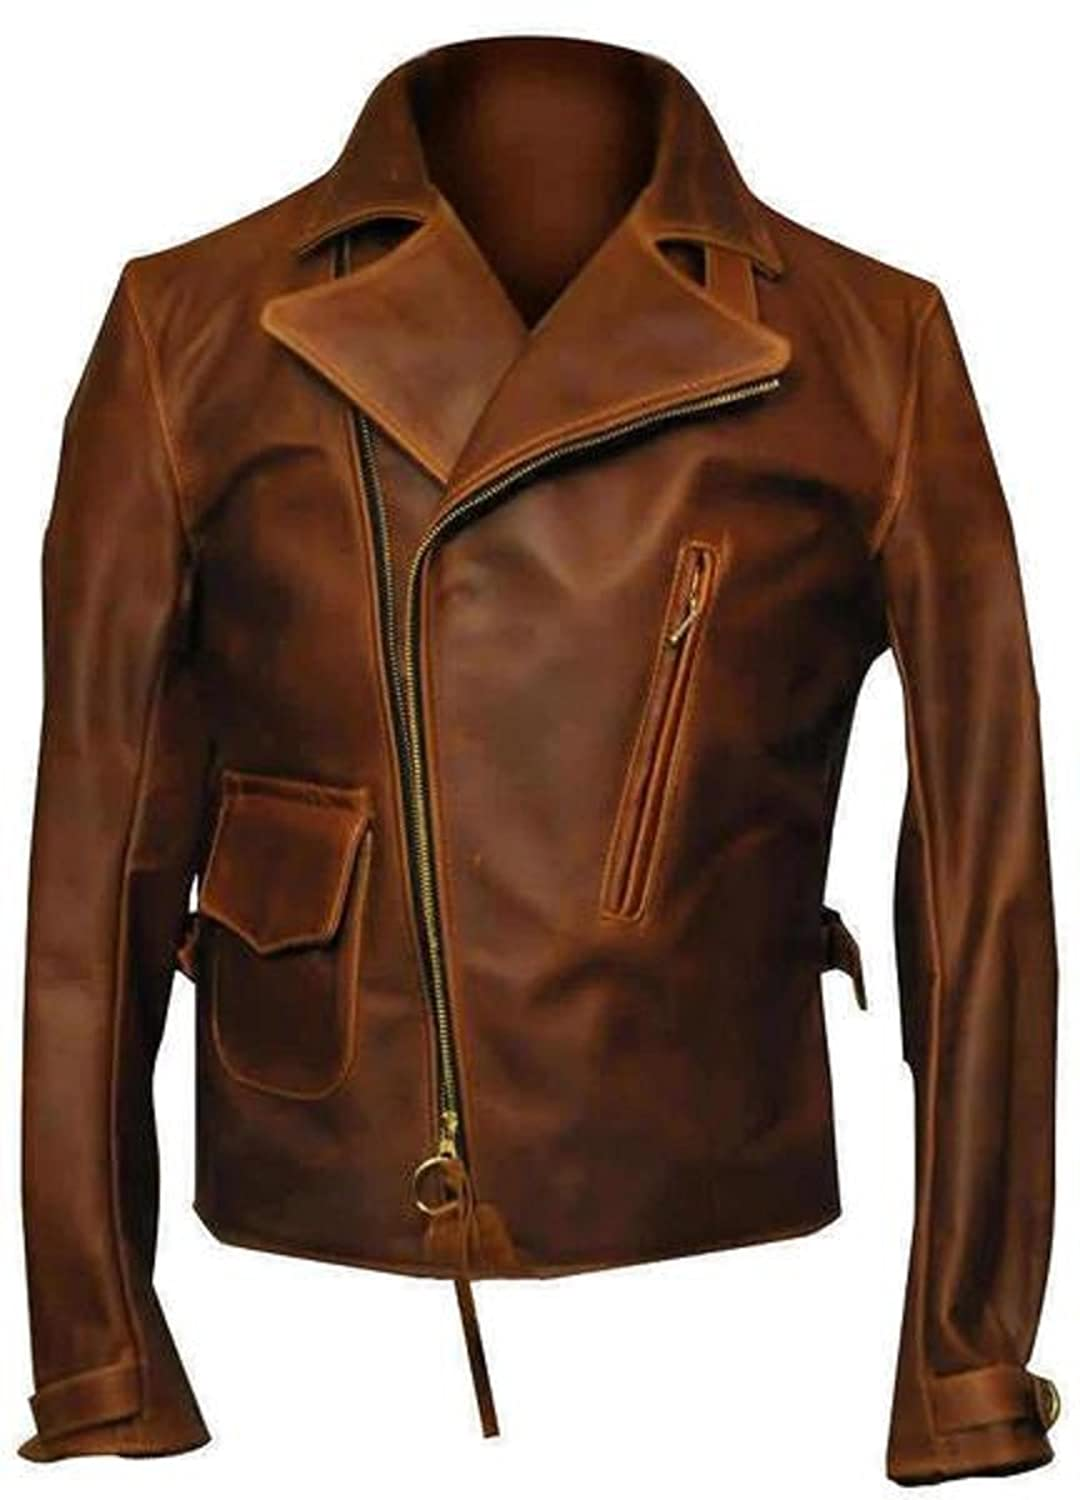 Captain America First Avenger Brown Real Leather Jacket - DeluxeAdultCostumes.com